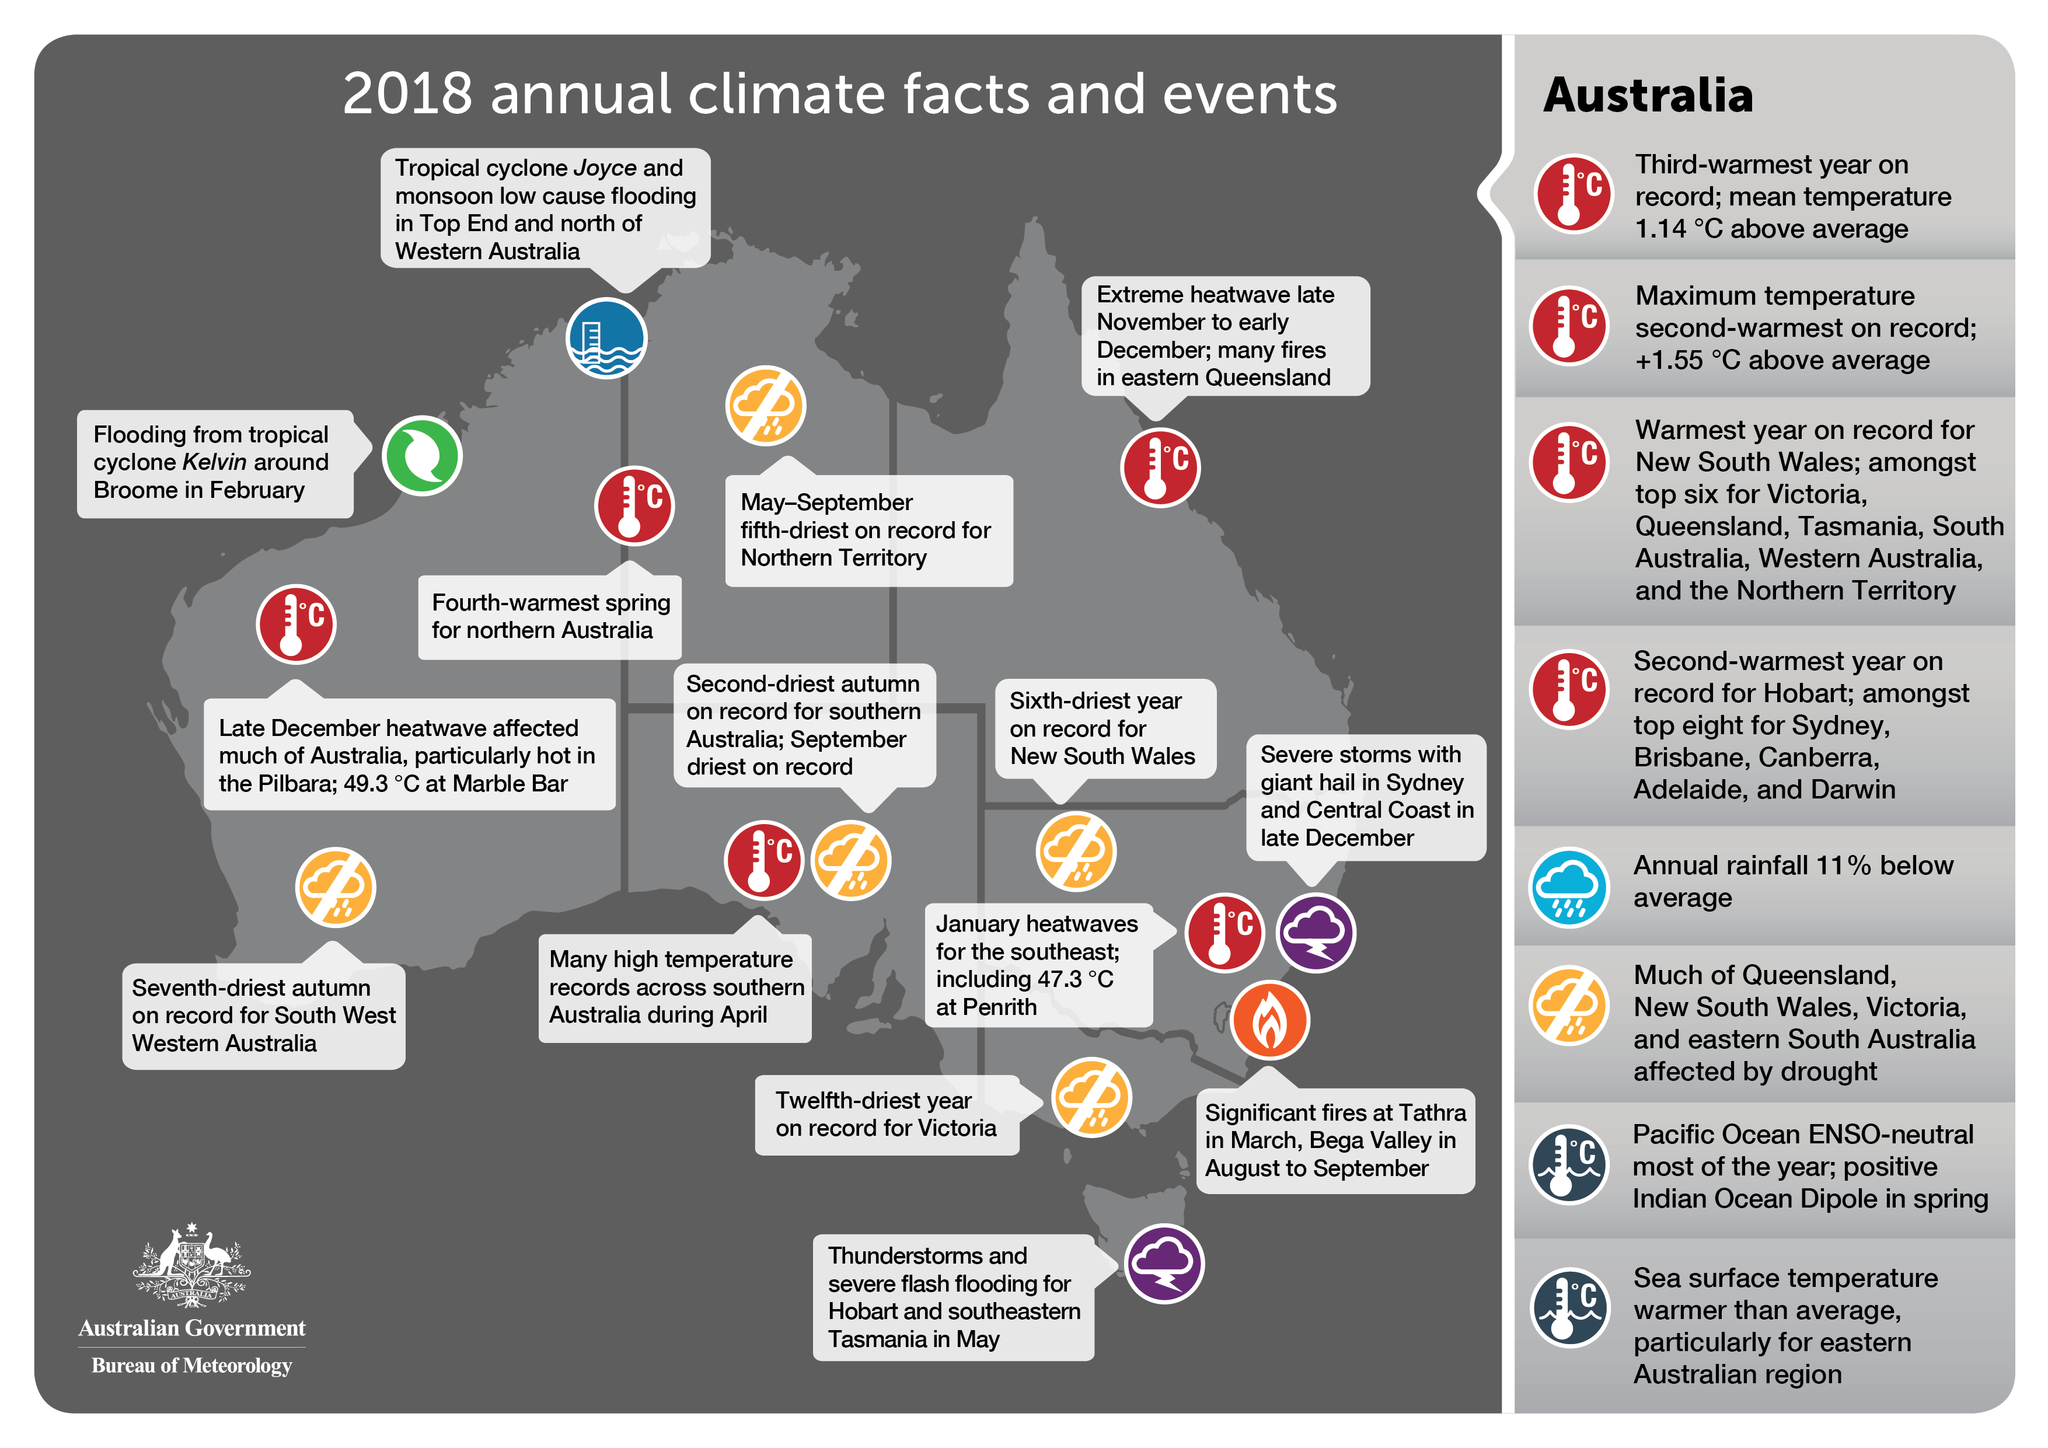 BOM climate statement 2018: Third hottest year,  lowest rainfall since 2005